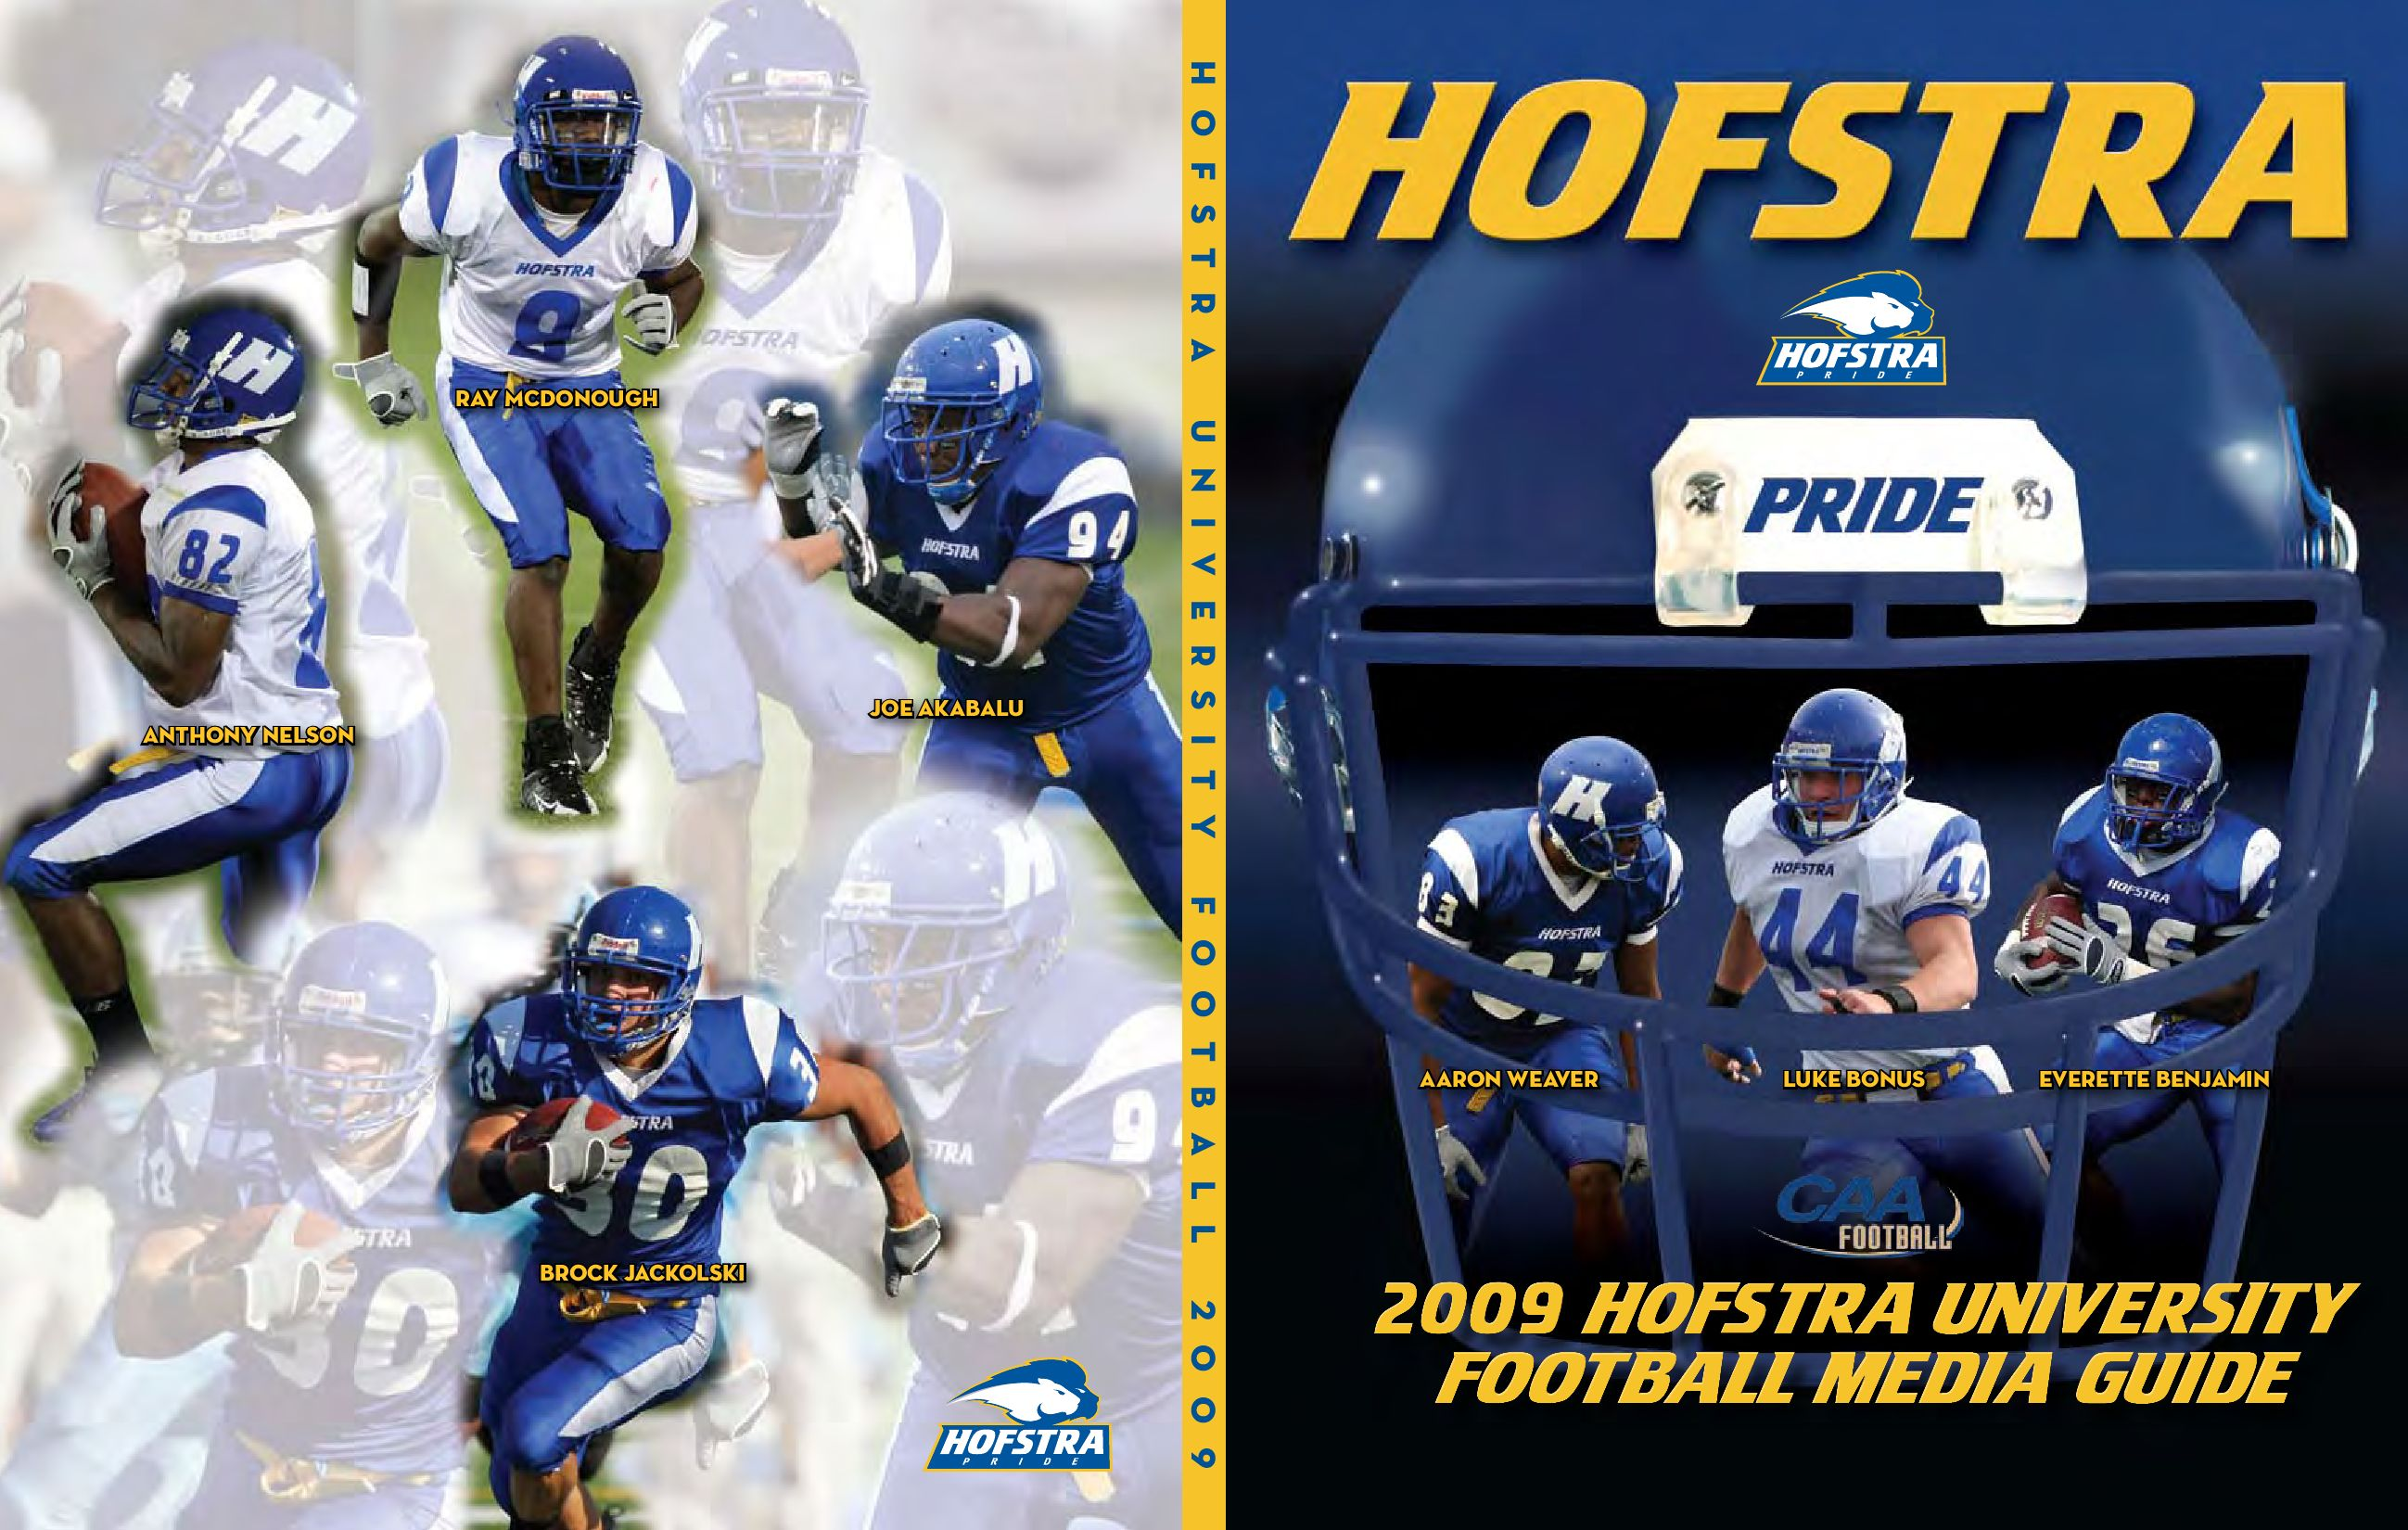 2009 Hofstra University Football Media Guide by Hofstra